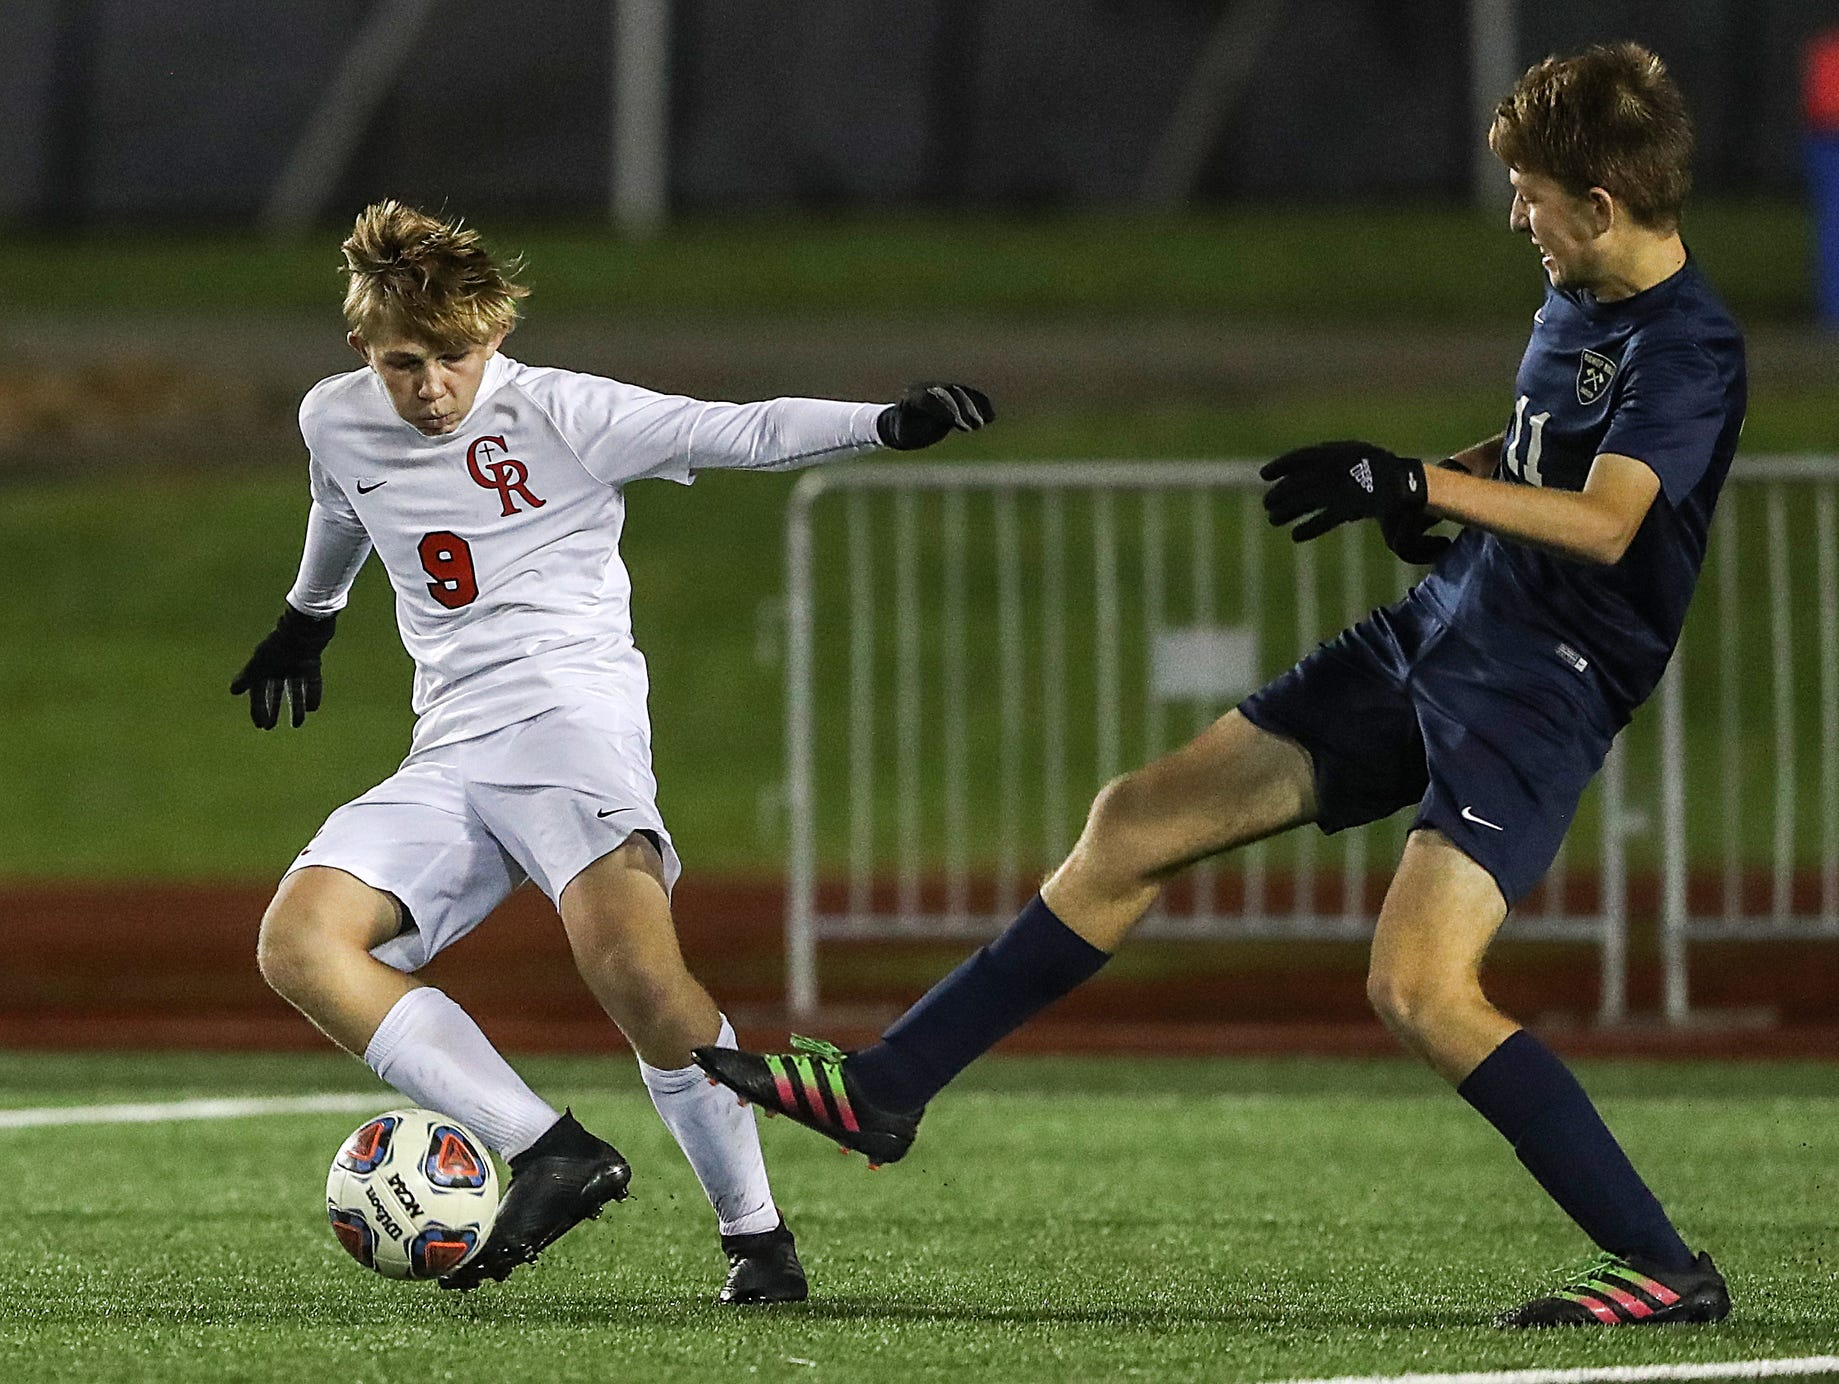 Cardinal Ritter Raiders midfielder Jason Hofer (9) keeps the ball away from Hammond Bishop Noll Warriors midfielder Henry Smith (11) during the second half of IHSAA class 2A state finals at IUPUI's Michael A. Carroll Stadium in Indianapolis, Friday, Oct. 26, 2018. Hammond Bishop Noll defeated Cardinal Ritter, 1-0.